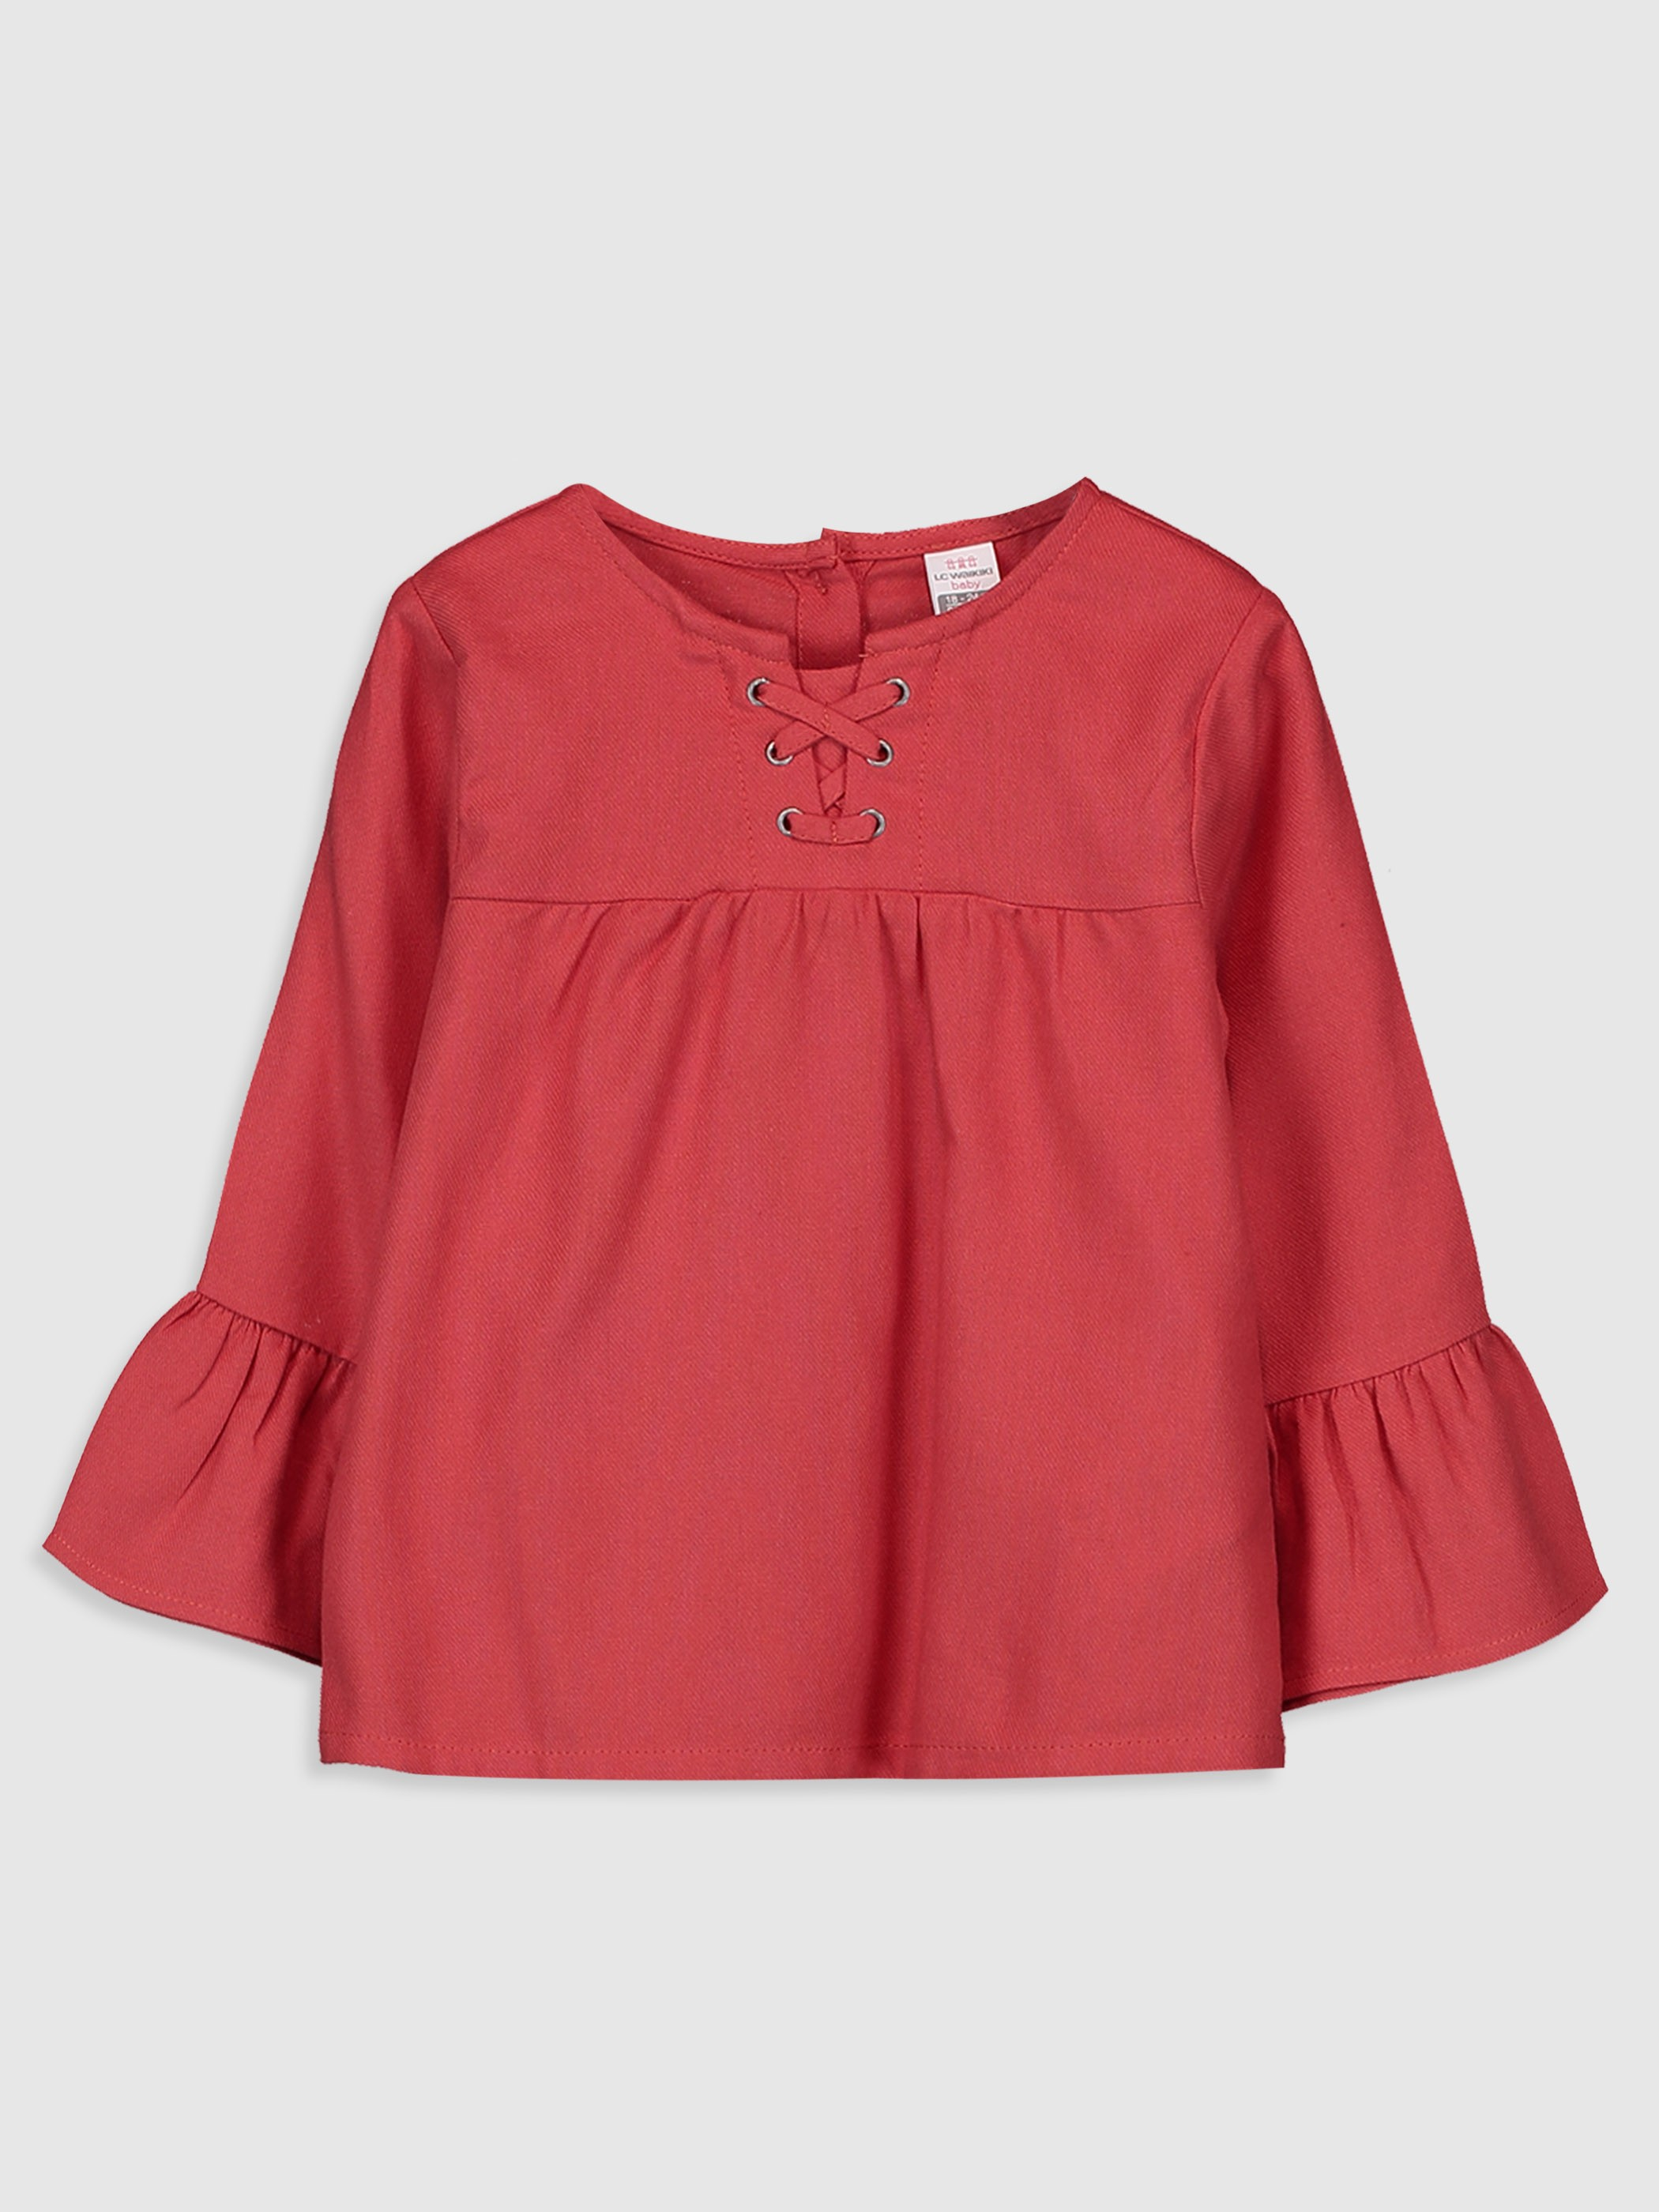 RED - Blouse - 9W9668Z1